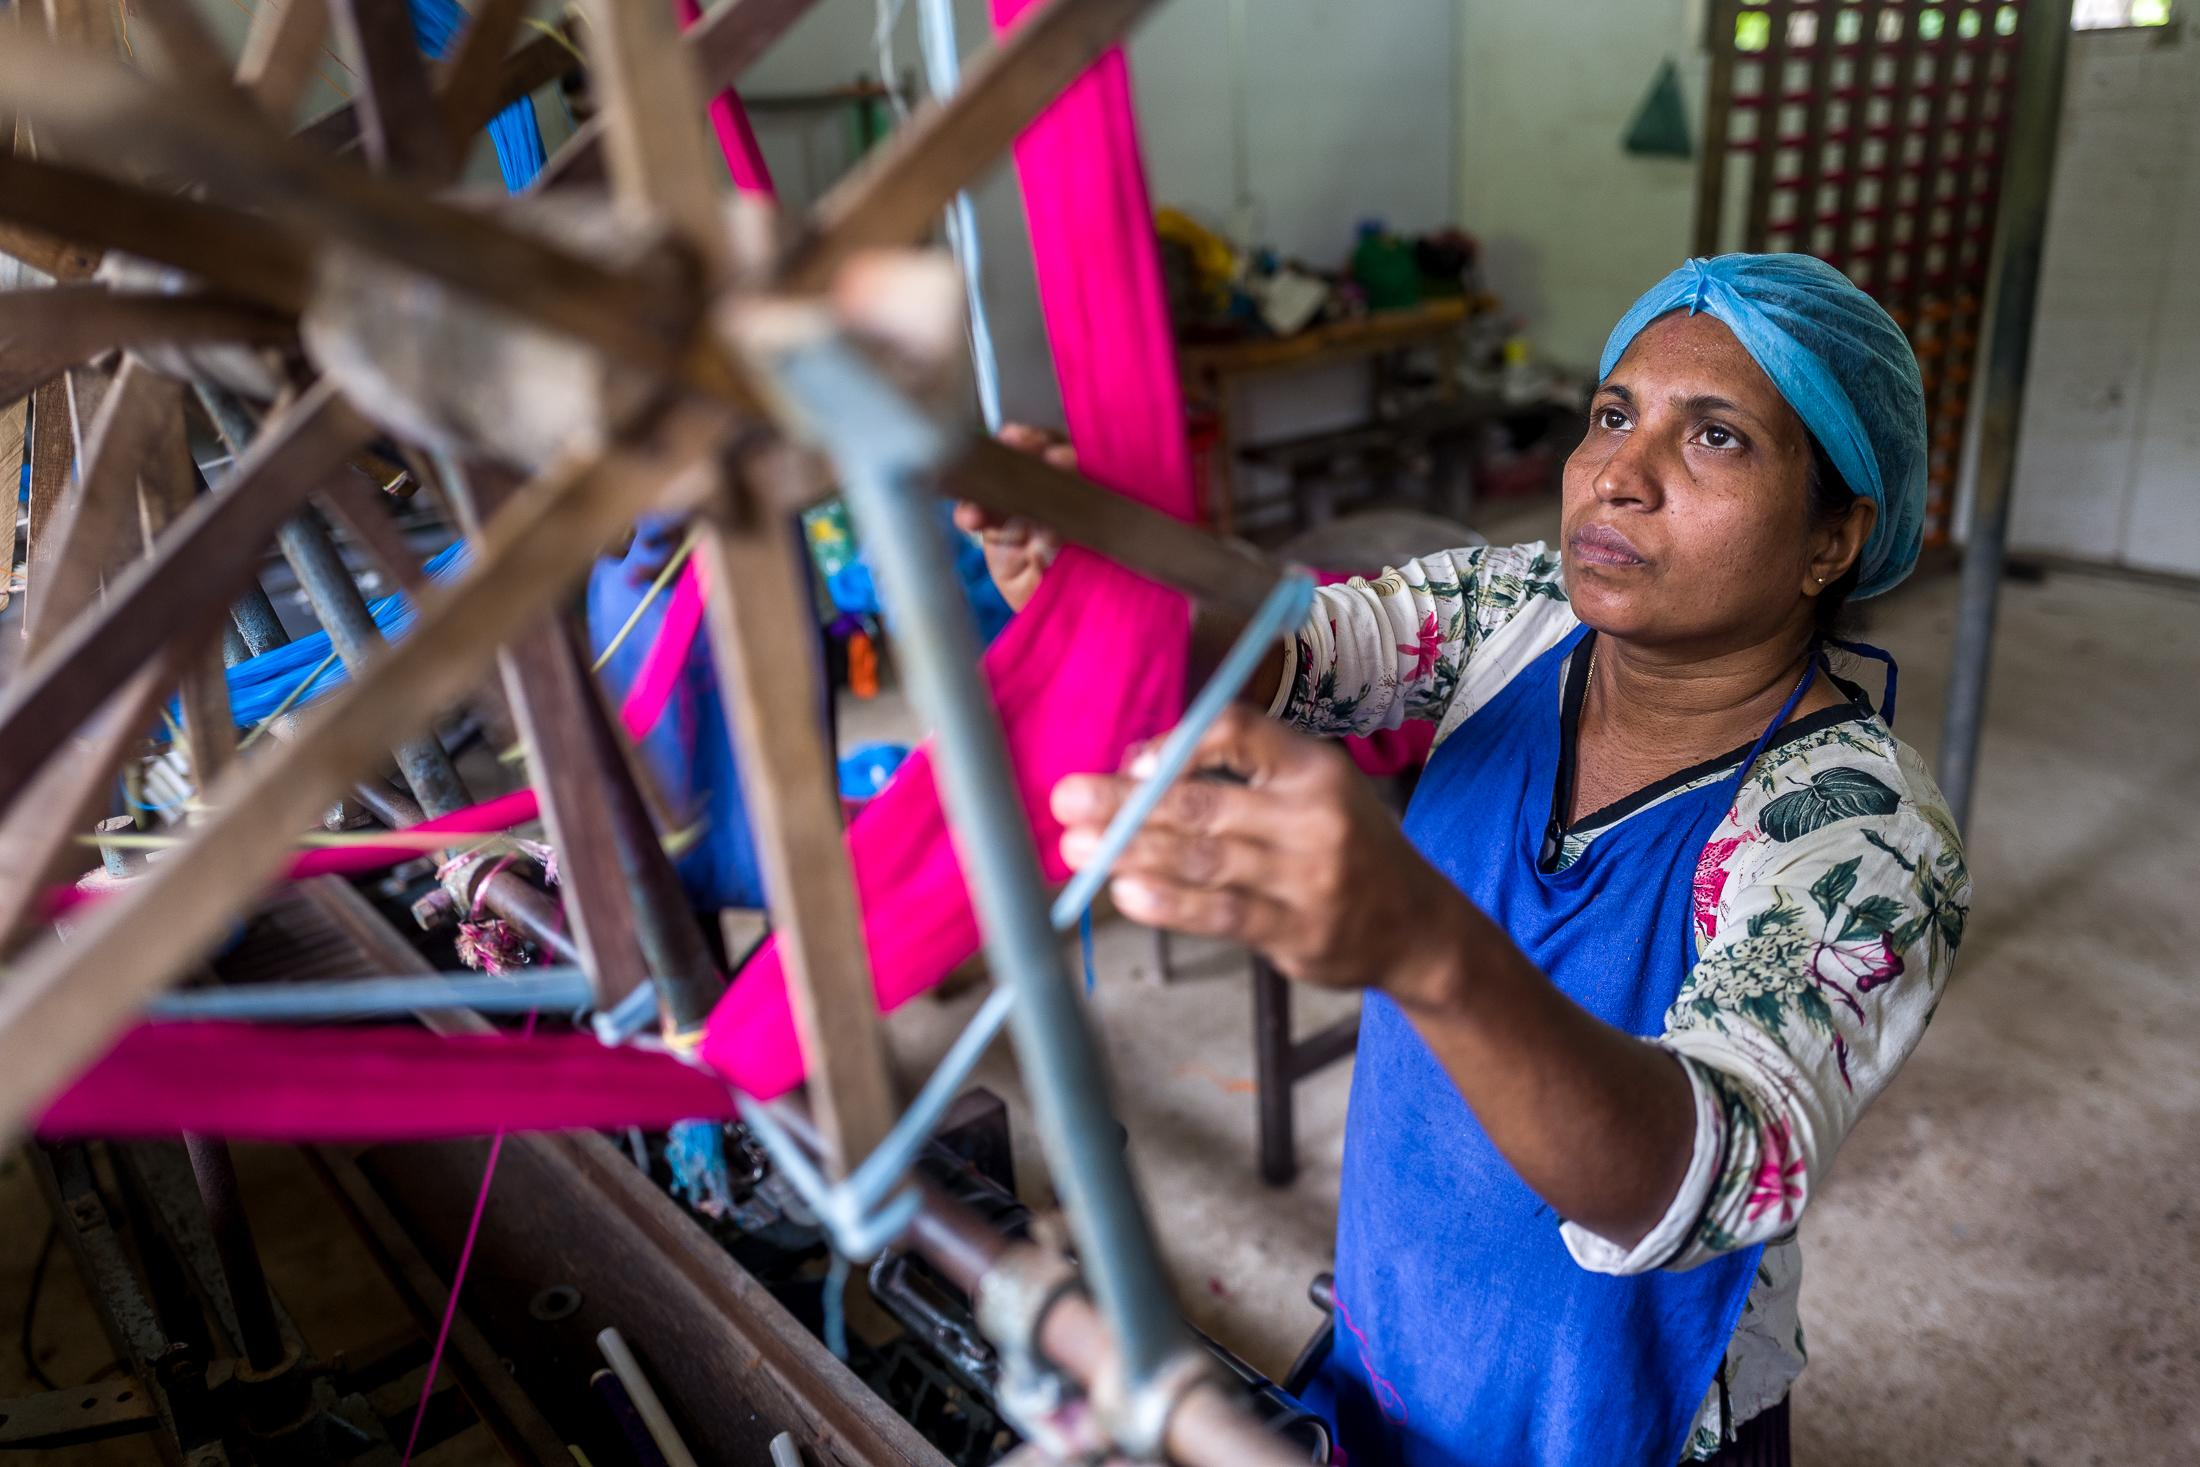 WELGALA, SRI LANKA – DECEMBER 13: A female worker performs her duties inside one of the handloom wards at the Selyn factory on December 13, 2018 in Welgala, Sri Lanka. All workers at the Selyn factory come to work from nearby villages. Most workers arrive early in the morning to the factory riding bicycles that the company helps them to buy by paying half of the price. Workers work daily 9-hours shifts, including a 1-hour lunch break. Photo: © Omar Havana for  IFC